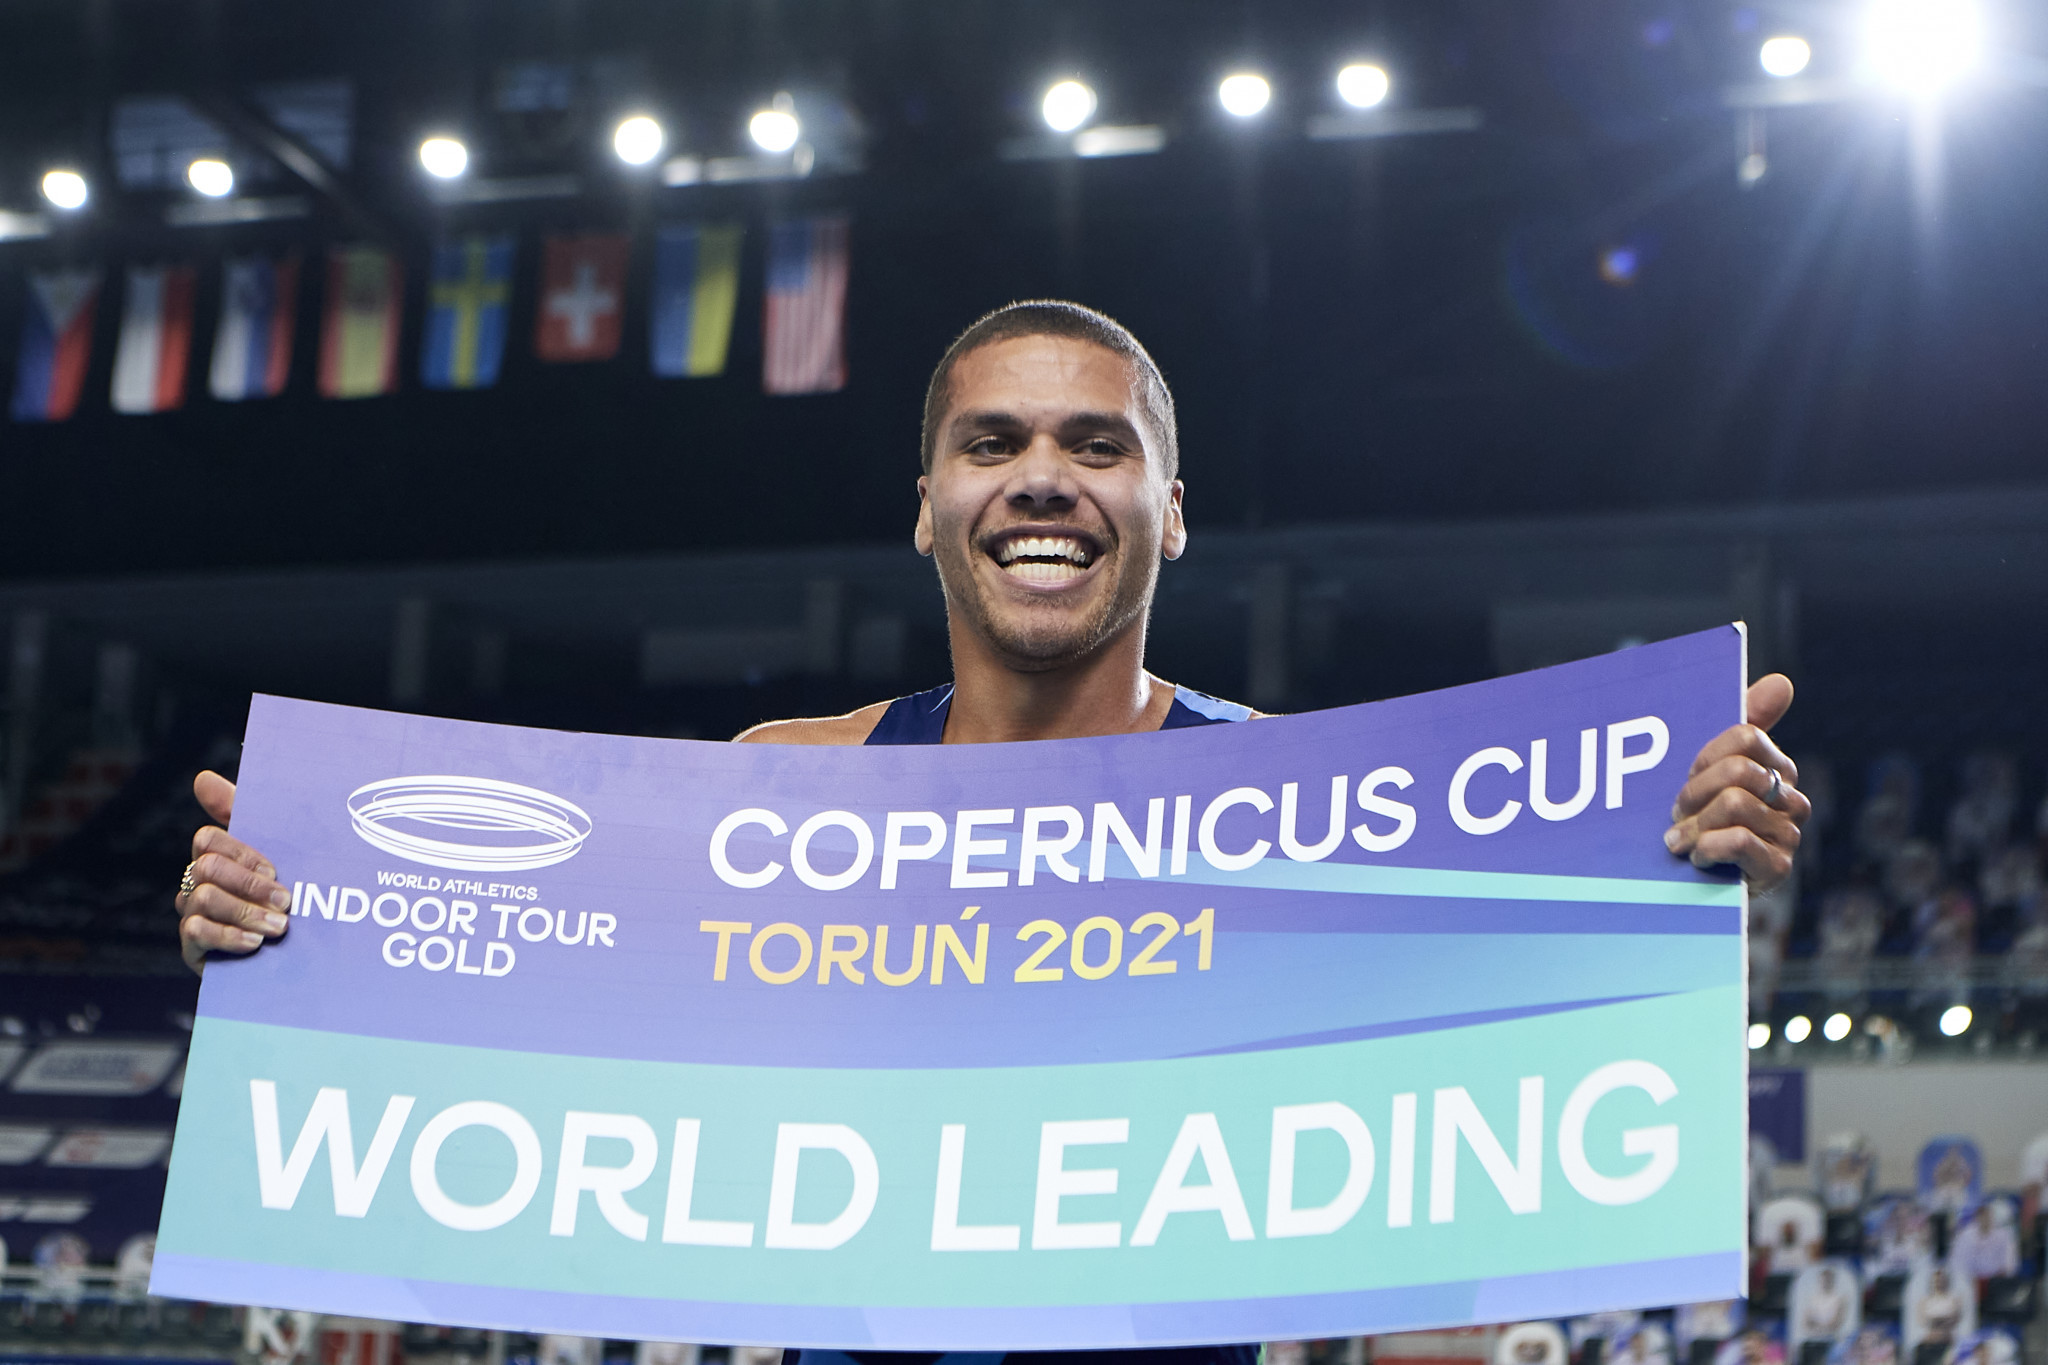 Giles runs second-fastest indoor 800m ever on night of 2021 world leads in Torun